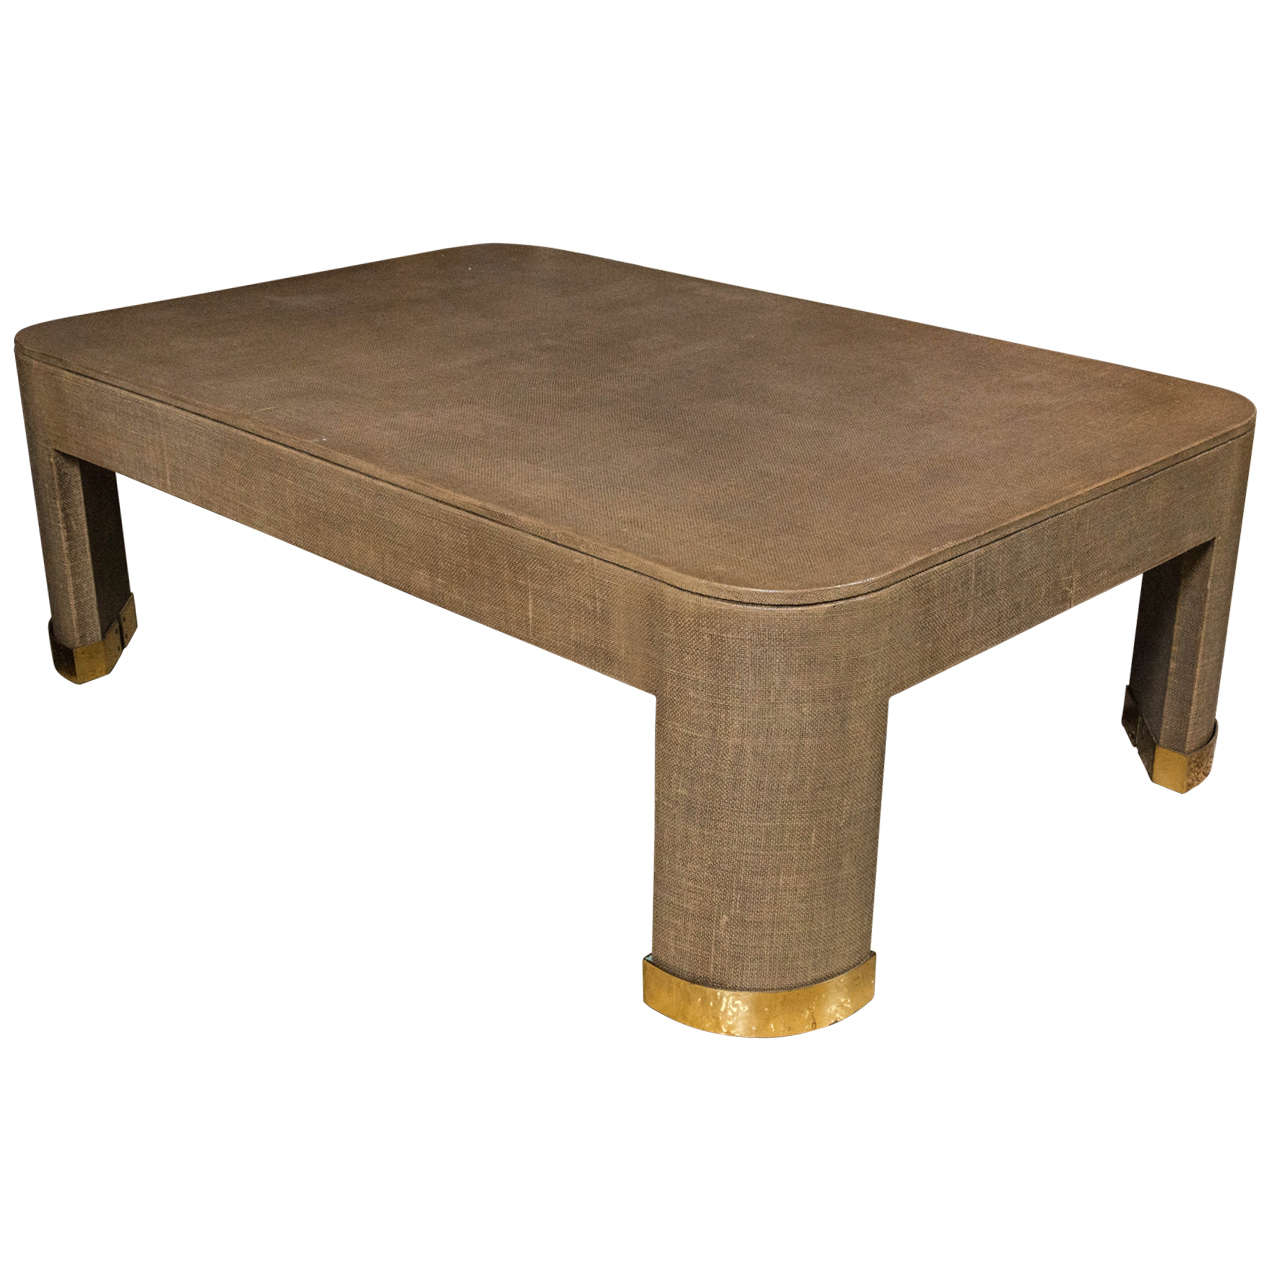 Palatial Karl Springer Parsons Style Linen Wrapped Coffee Table / Cocktail Table